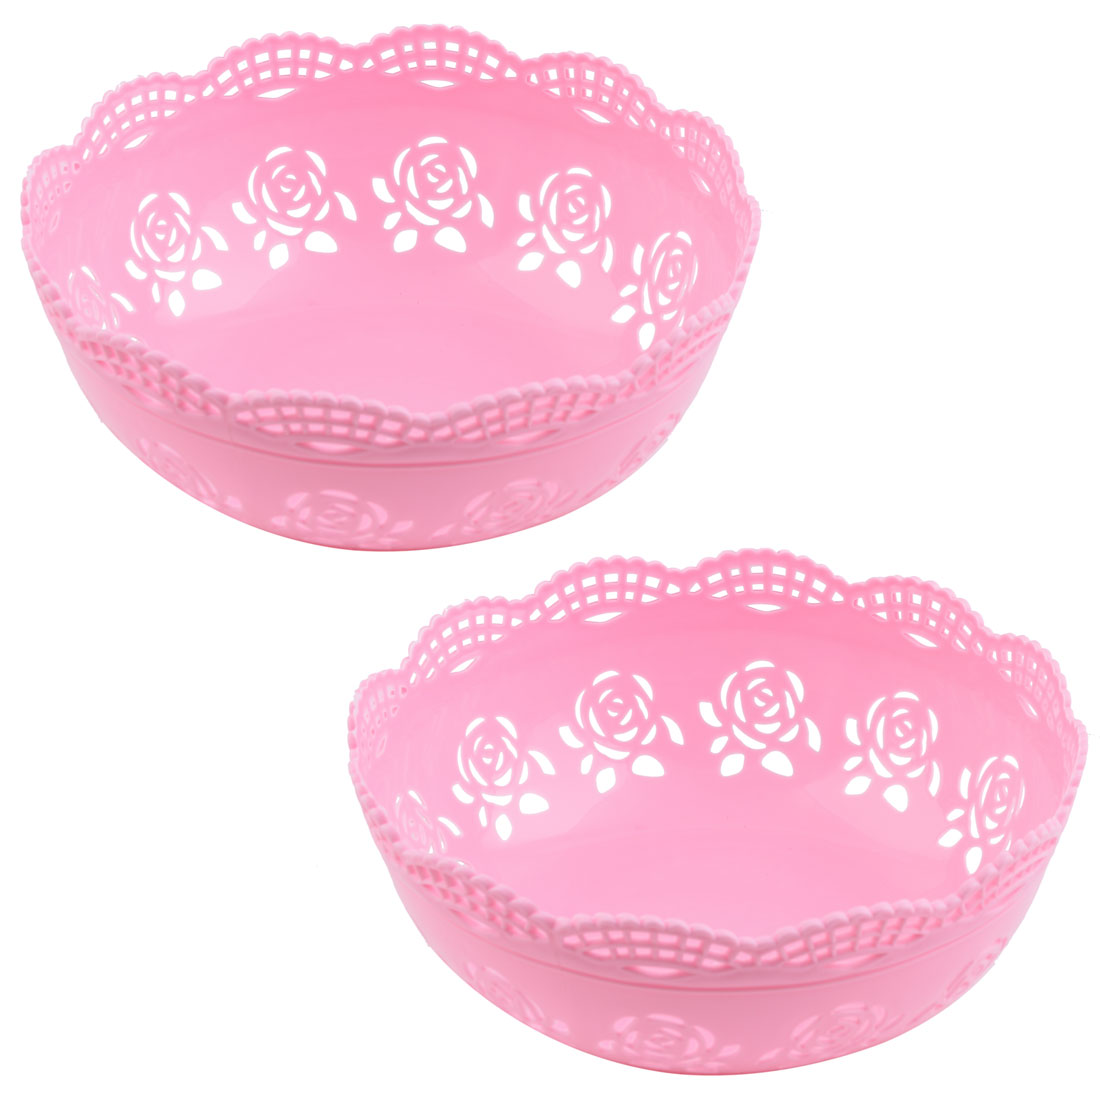 Home Desktop Plastic Hollow Out Rose Design Sundries Jewelry Storage Basket Pink 2pcs